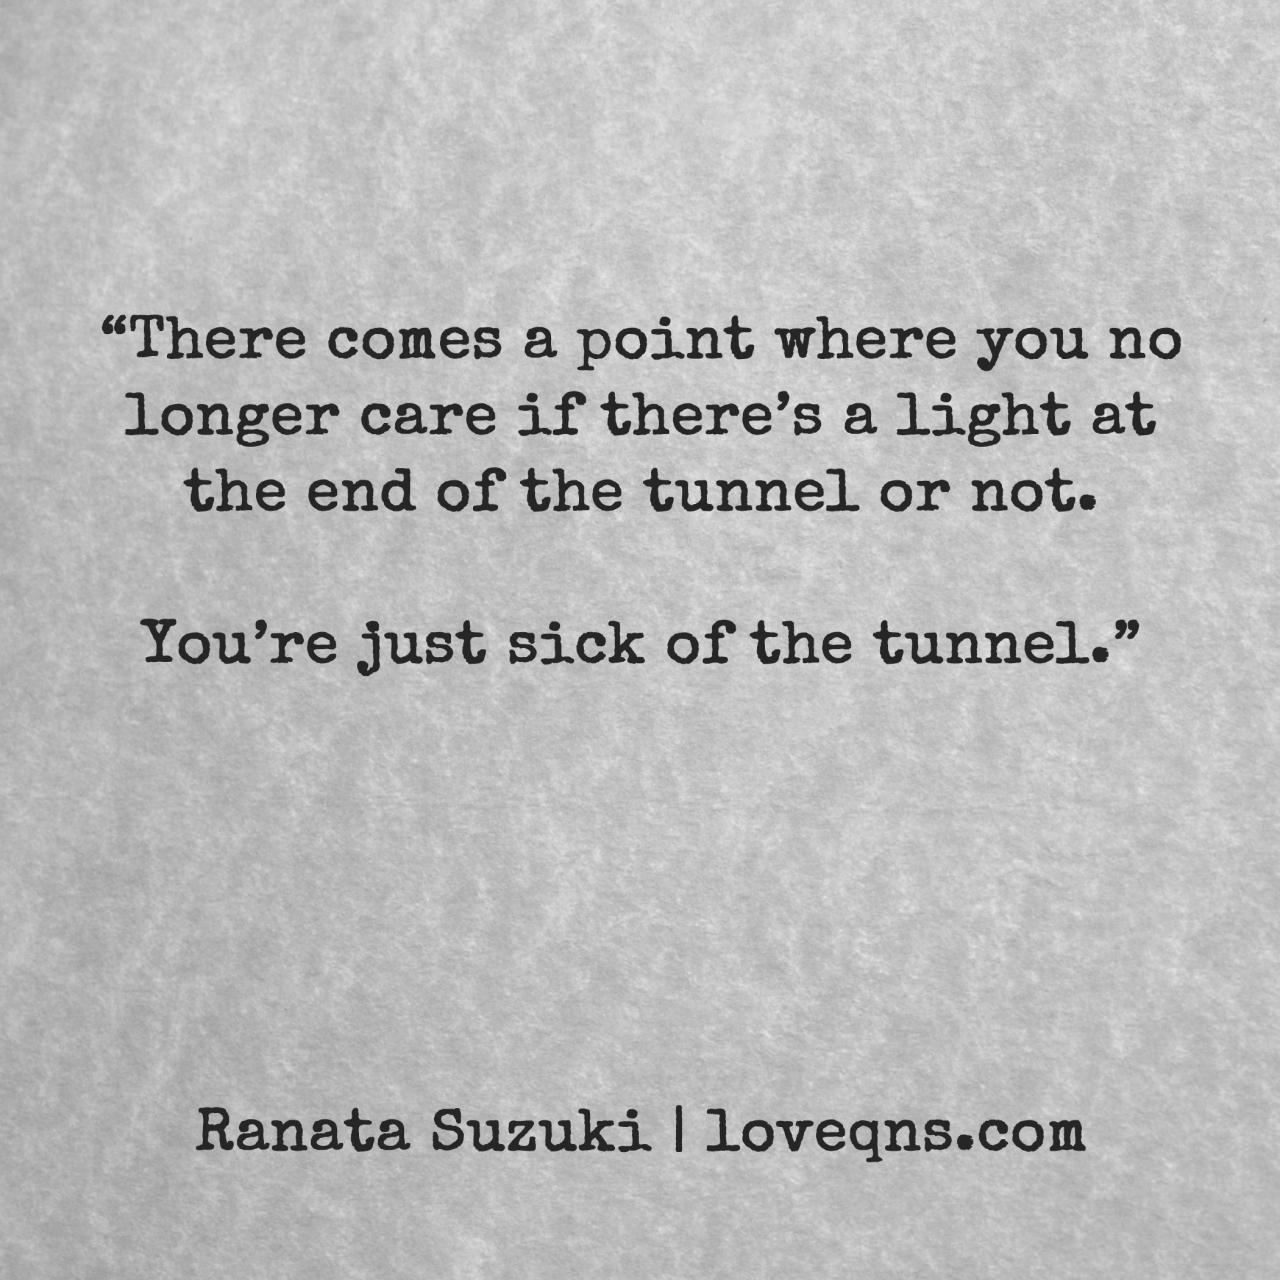 There Comes A Point Where You No Longer Care If Theres A Light At The End Of The Tunnel Or Not Youre Just Sick Of The Tunnel Ranata Suzuki Quote